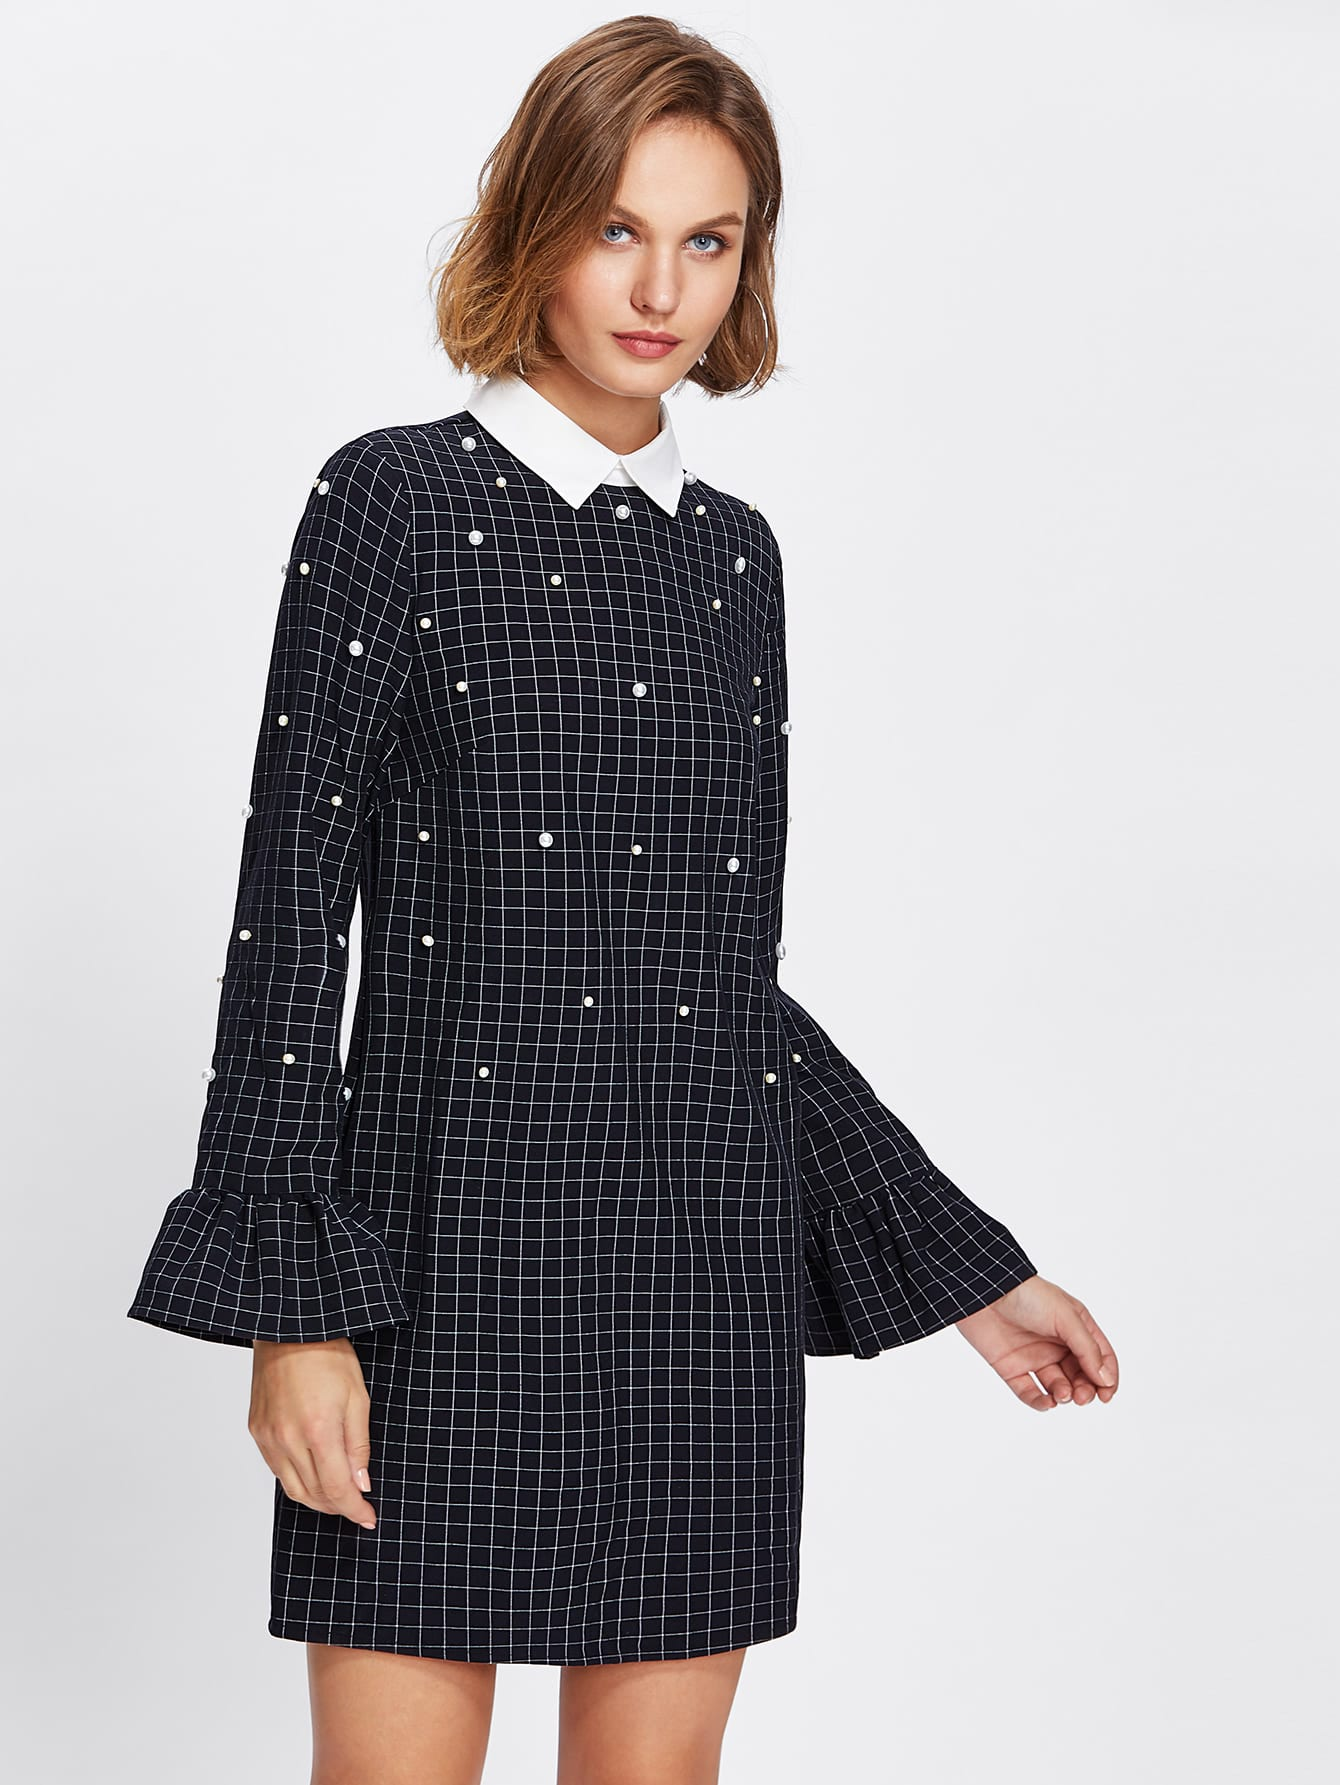 Contrast Collar Ruffle Cuff Pearl Embellished Checked Dress contrast layered ruffle hem pearl embellished dress